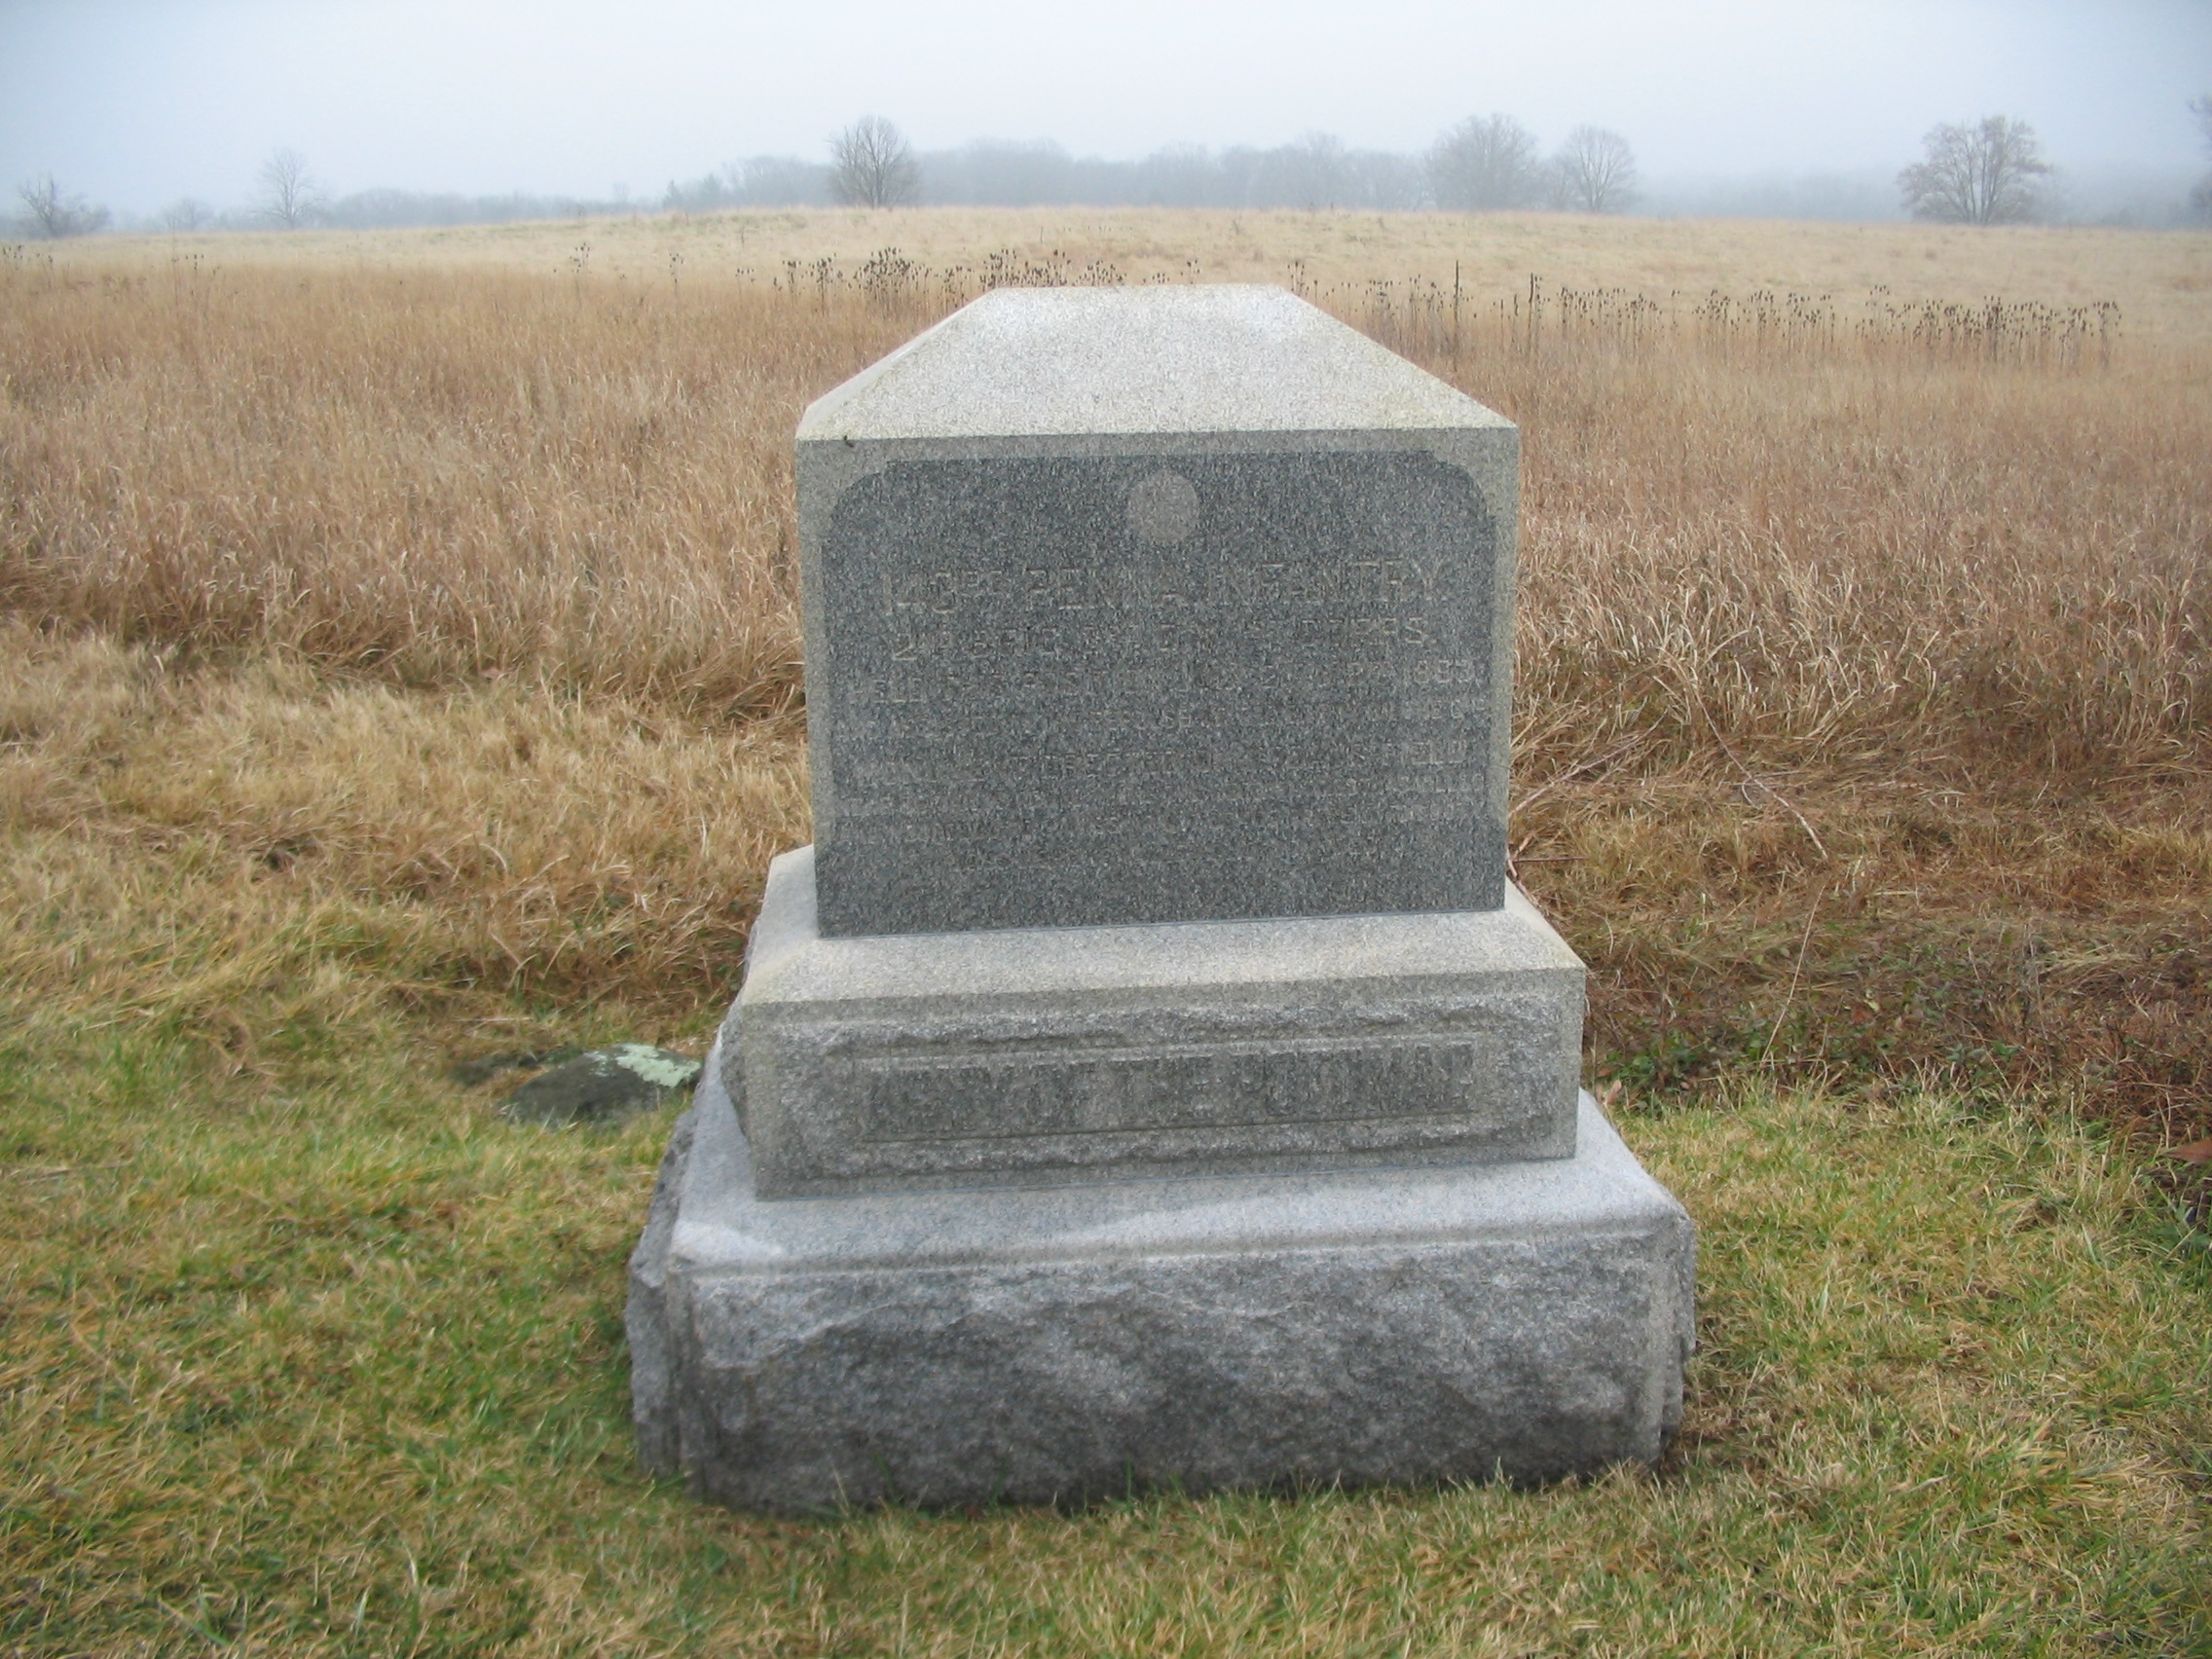 143rd Pennsylvania Infantry Monument